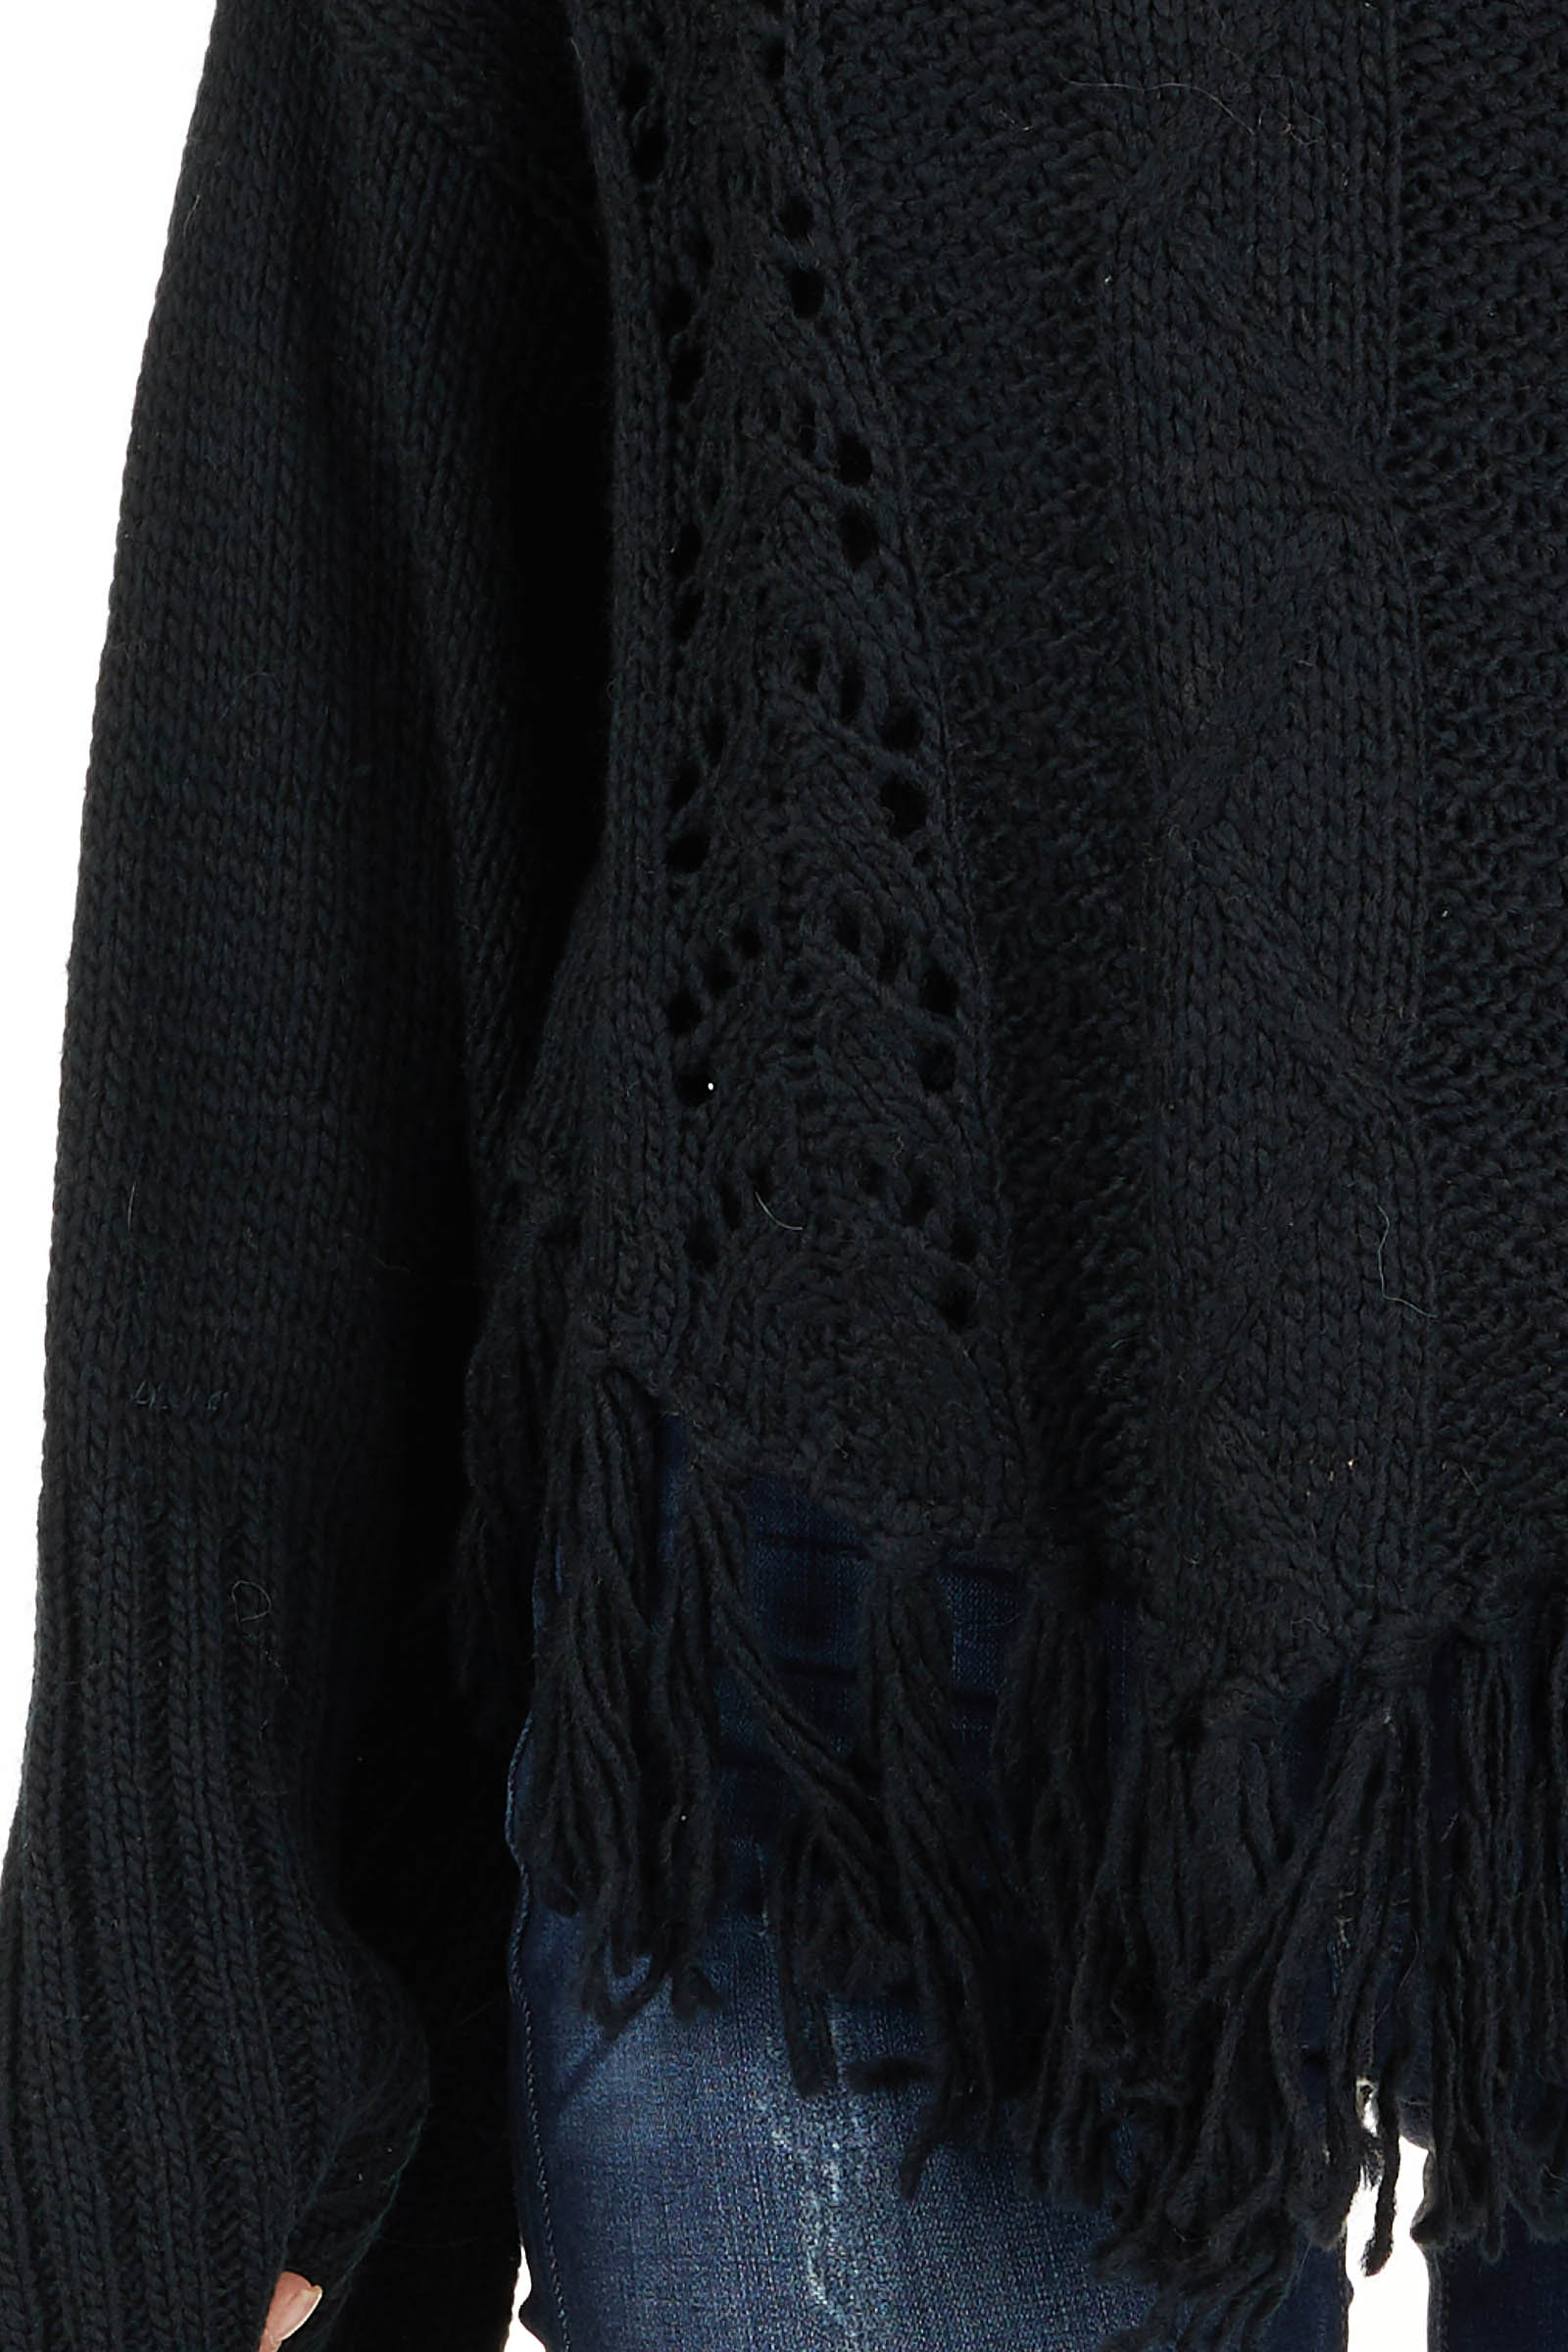 Black Long Sleeve Cable Knit Sweater with Tassel Details detail